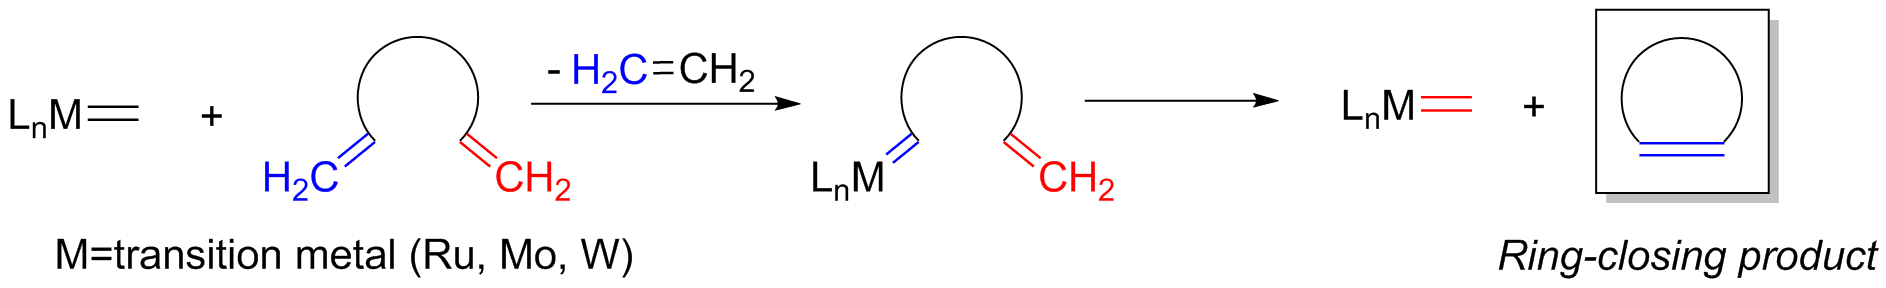 grubbs ring closing metathesis mechanism Proved reactivity is attributed to a relay step in the cross metathesis reaction mechanism introduction over the last two decades,  scheme 3: relay ring closing metathesis and relay cross metathesis scheme 4: cross metathesis reactions of vinyl phosphonates route to (−)-centrolobine (8)  relay cross metathesis reactions of vinylphosphonates.